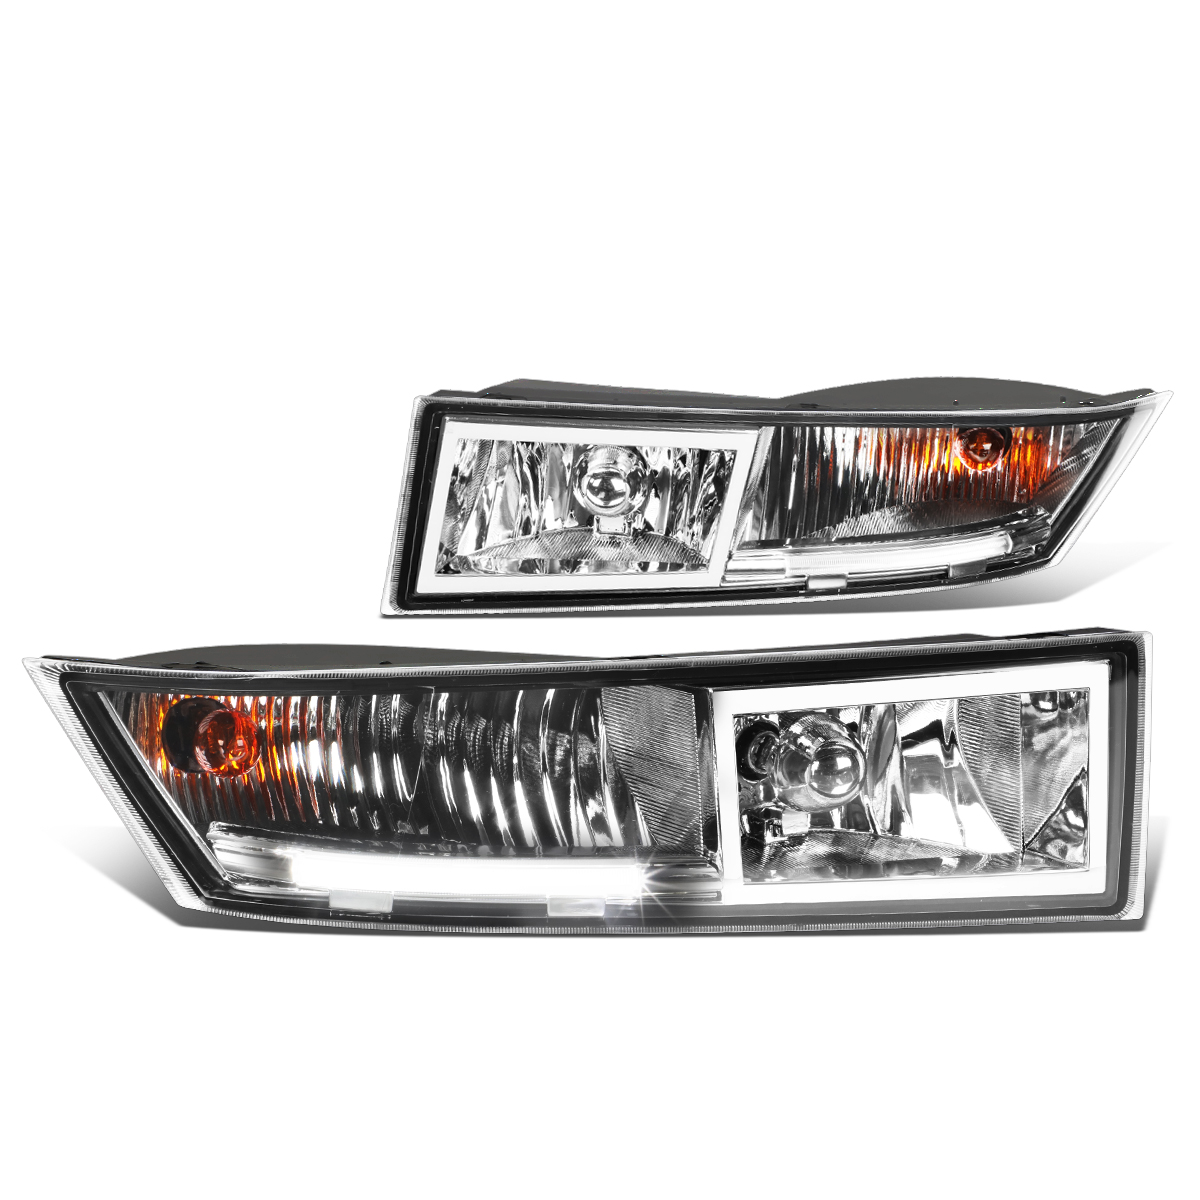 For 07-14 Cadillac Escalade ESV/EXT Pair Bumper Driving LED DRL Fog Light/Lamp Clear Lens 08 09 10 11 12 13